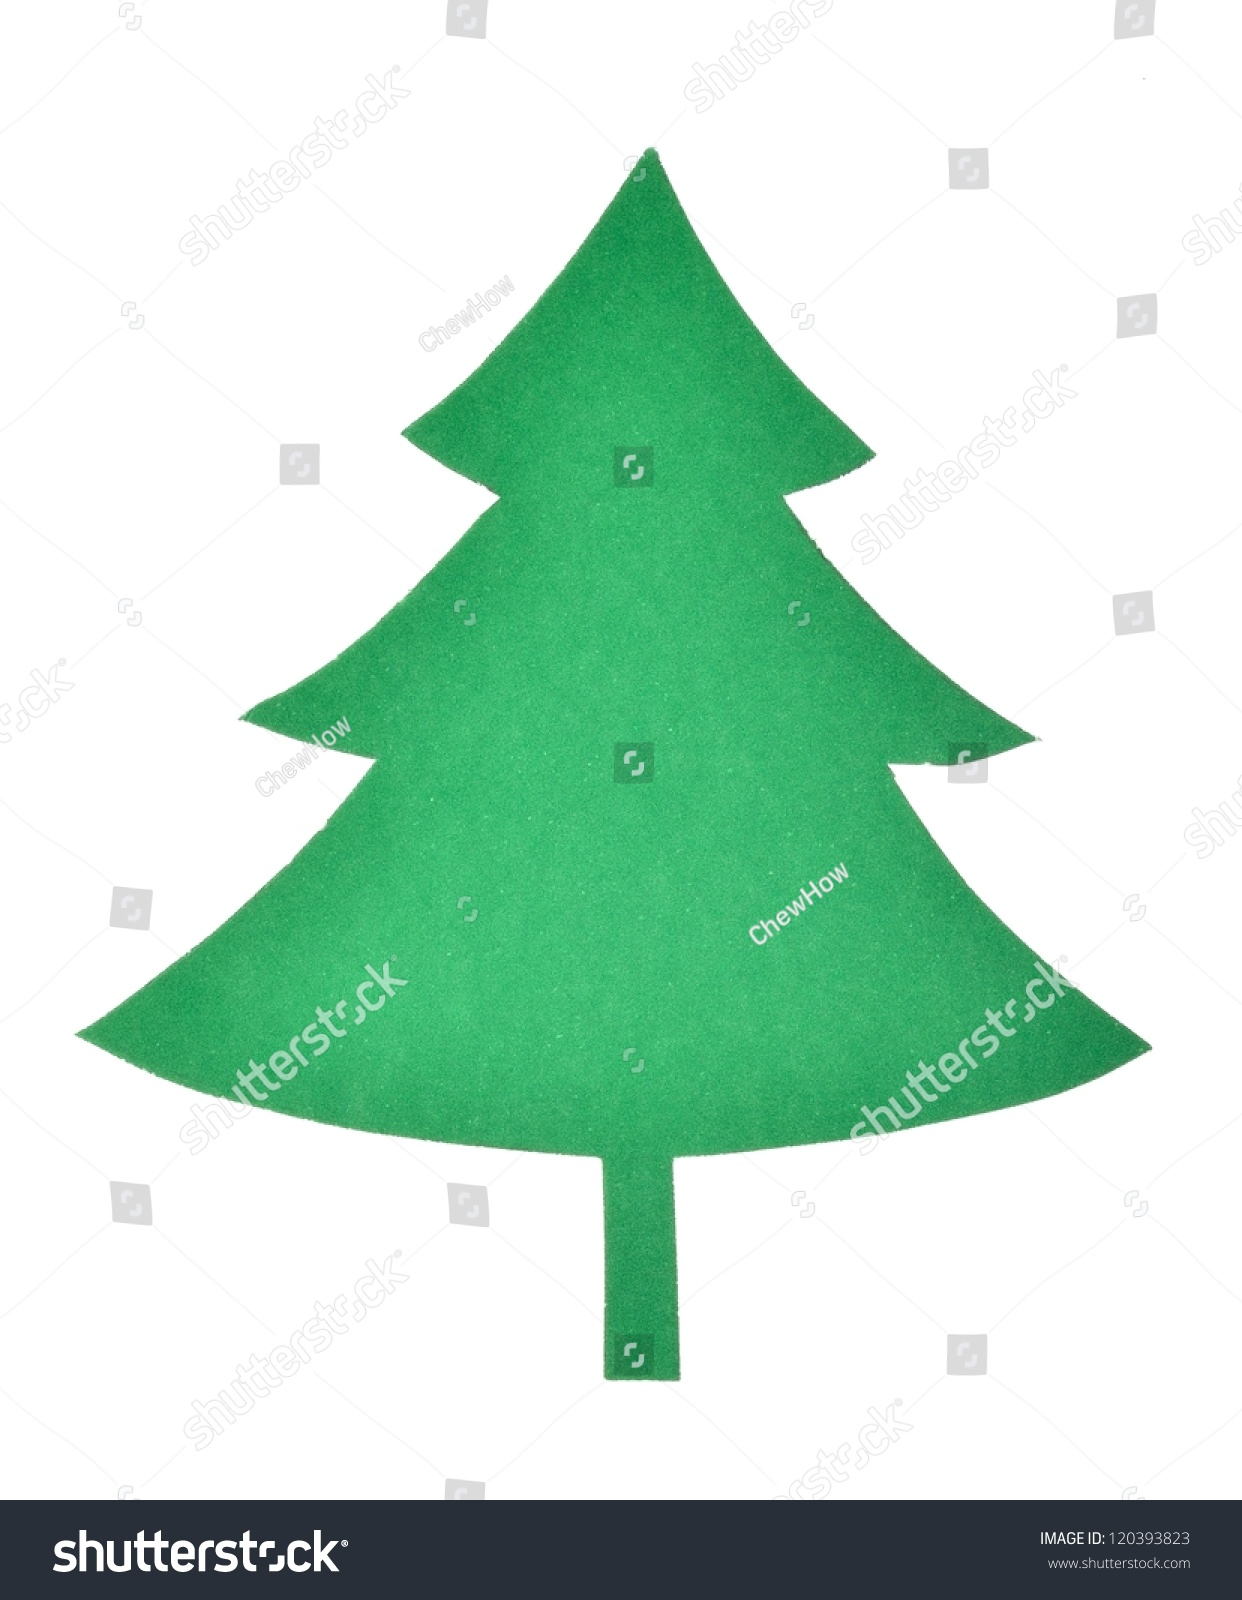 Green Paper Cut Out Christmas Tree Stock Photo 120393823 - Shutterstock